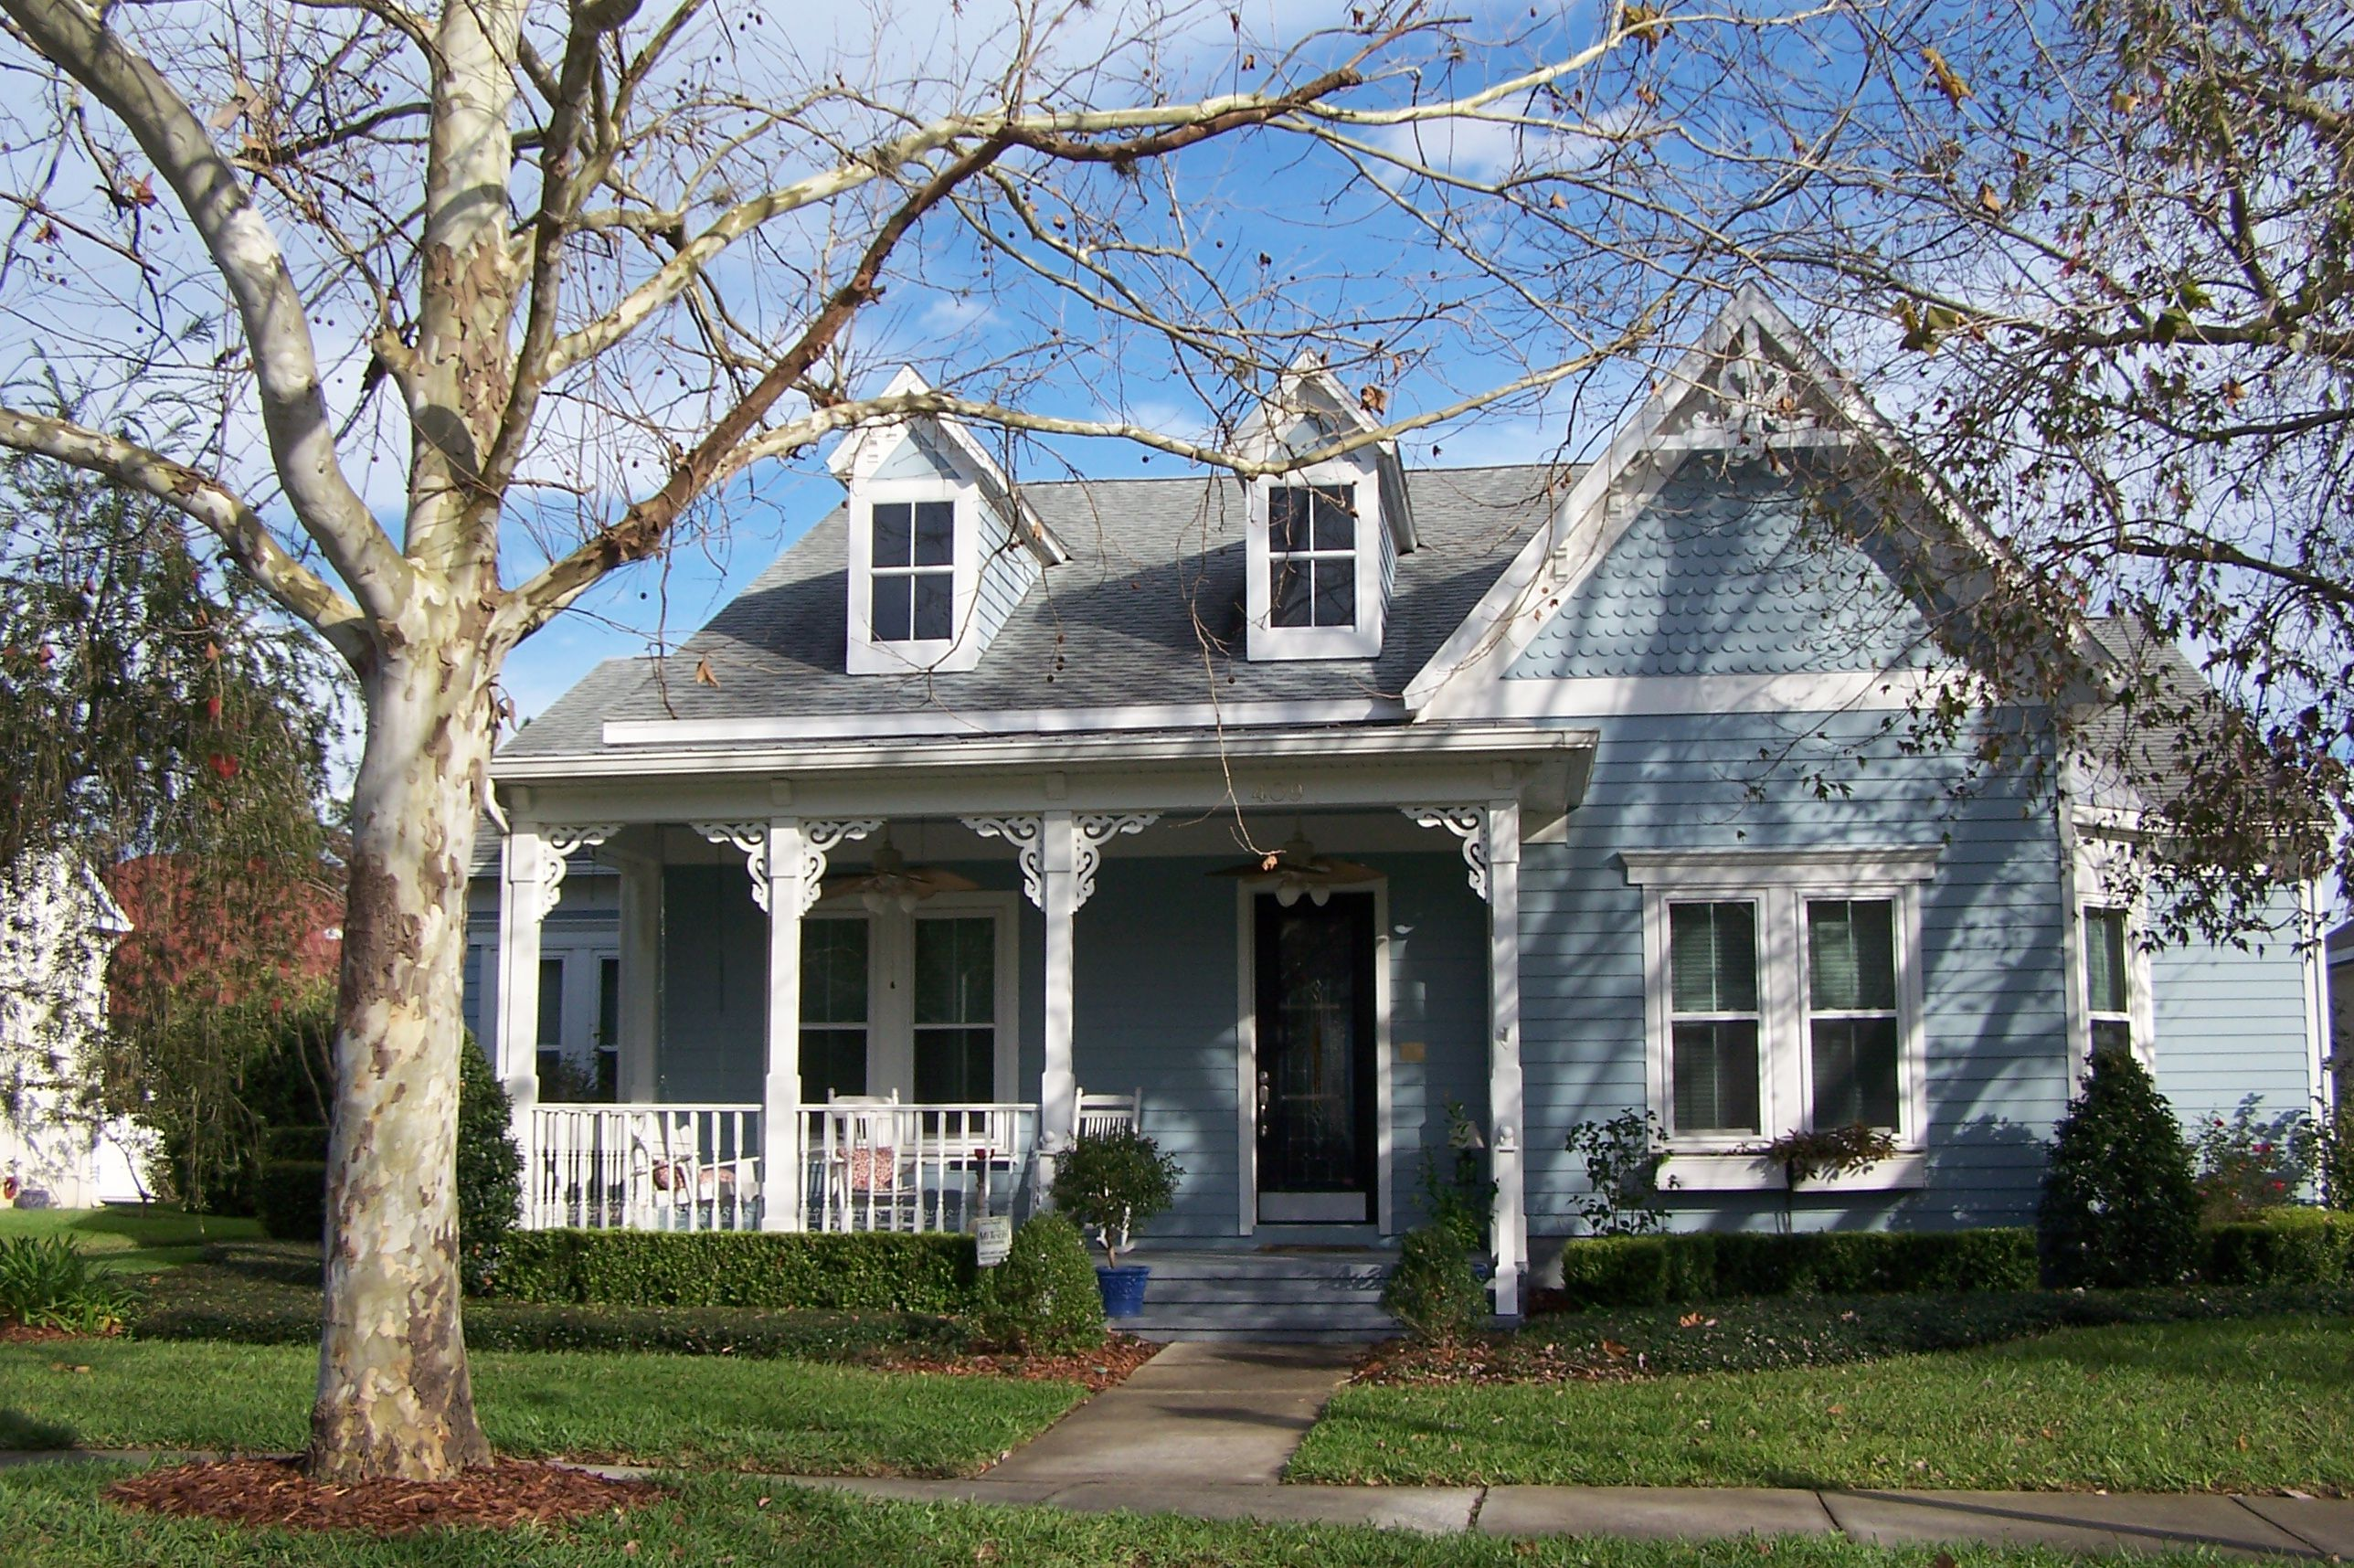 Blue-sided folk Victorian house with two dormers